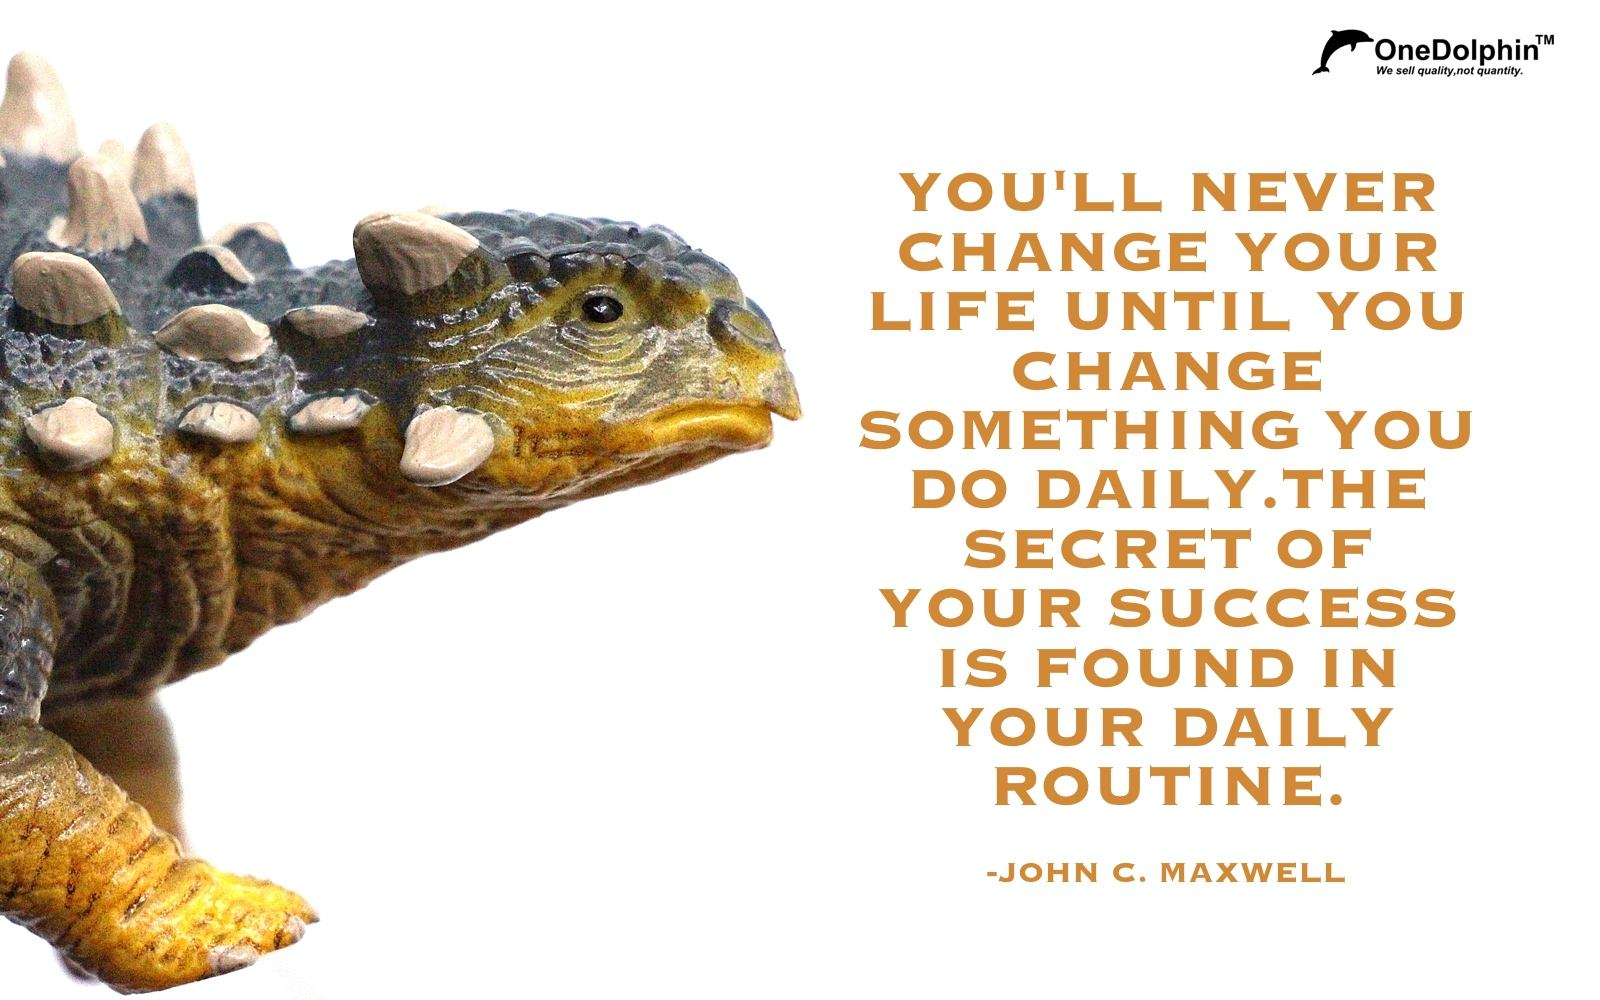 Ankylosaurus: you'll never change your life until you change something you do daily.